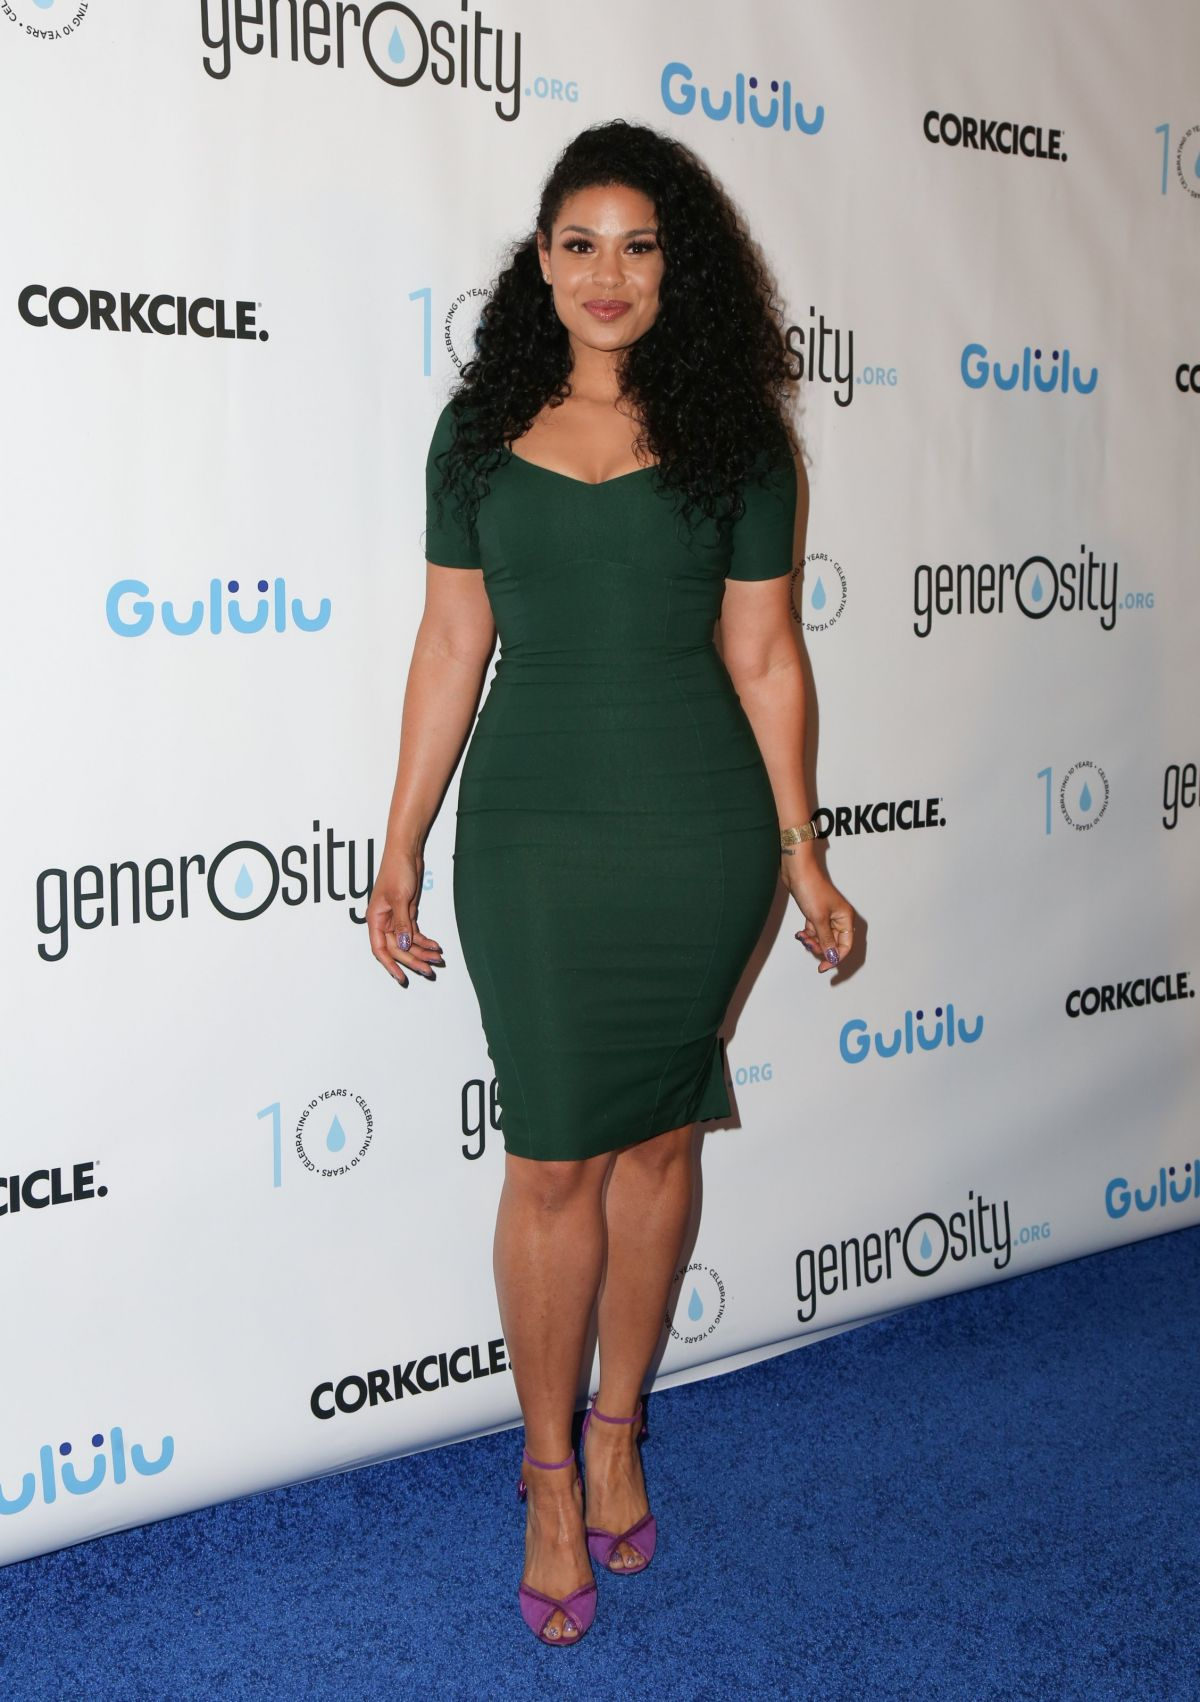 JORDIN SPARKS at Generosity.org Fundraiser for World Water Day in Beverly Hills 03/21/2017